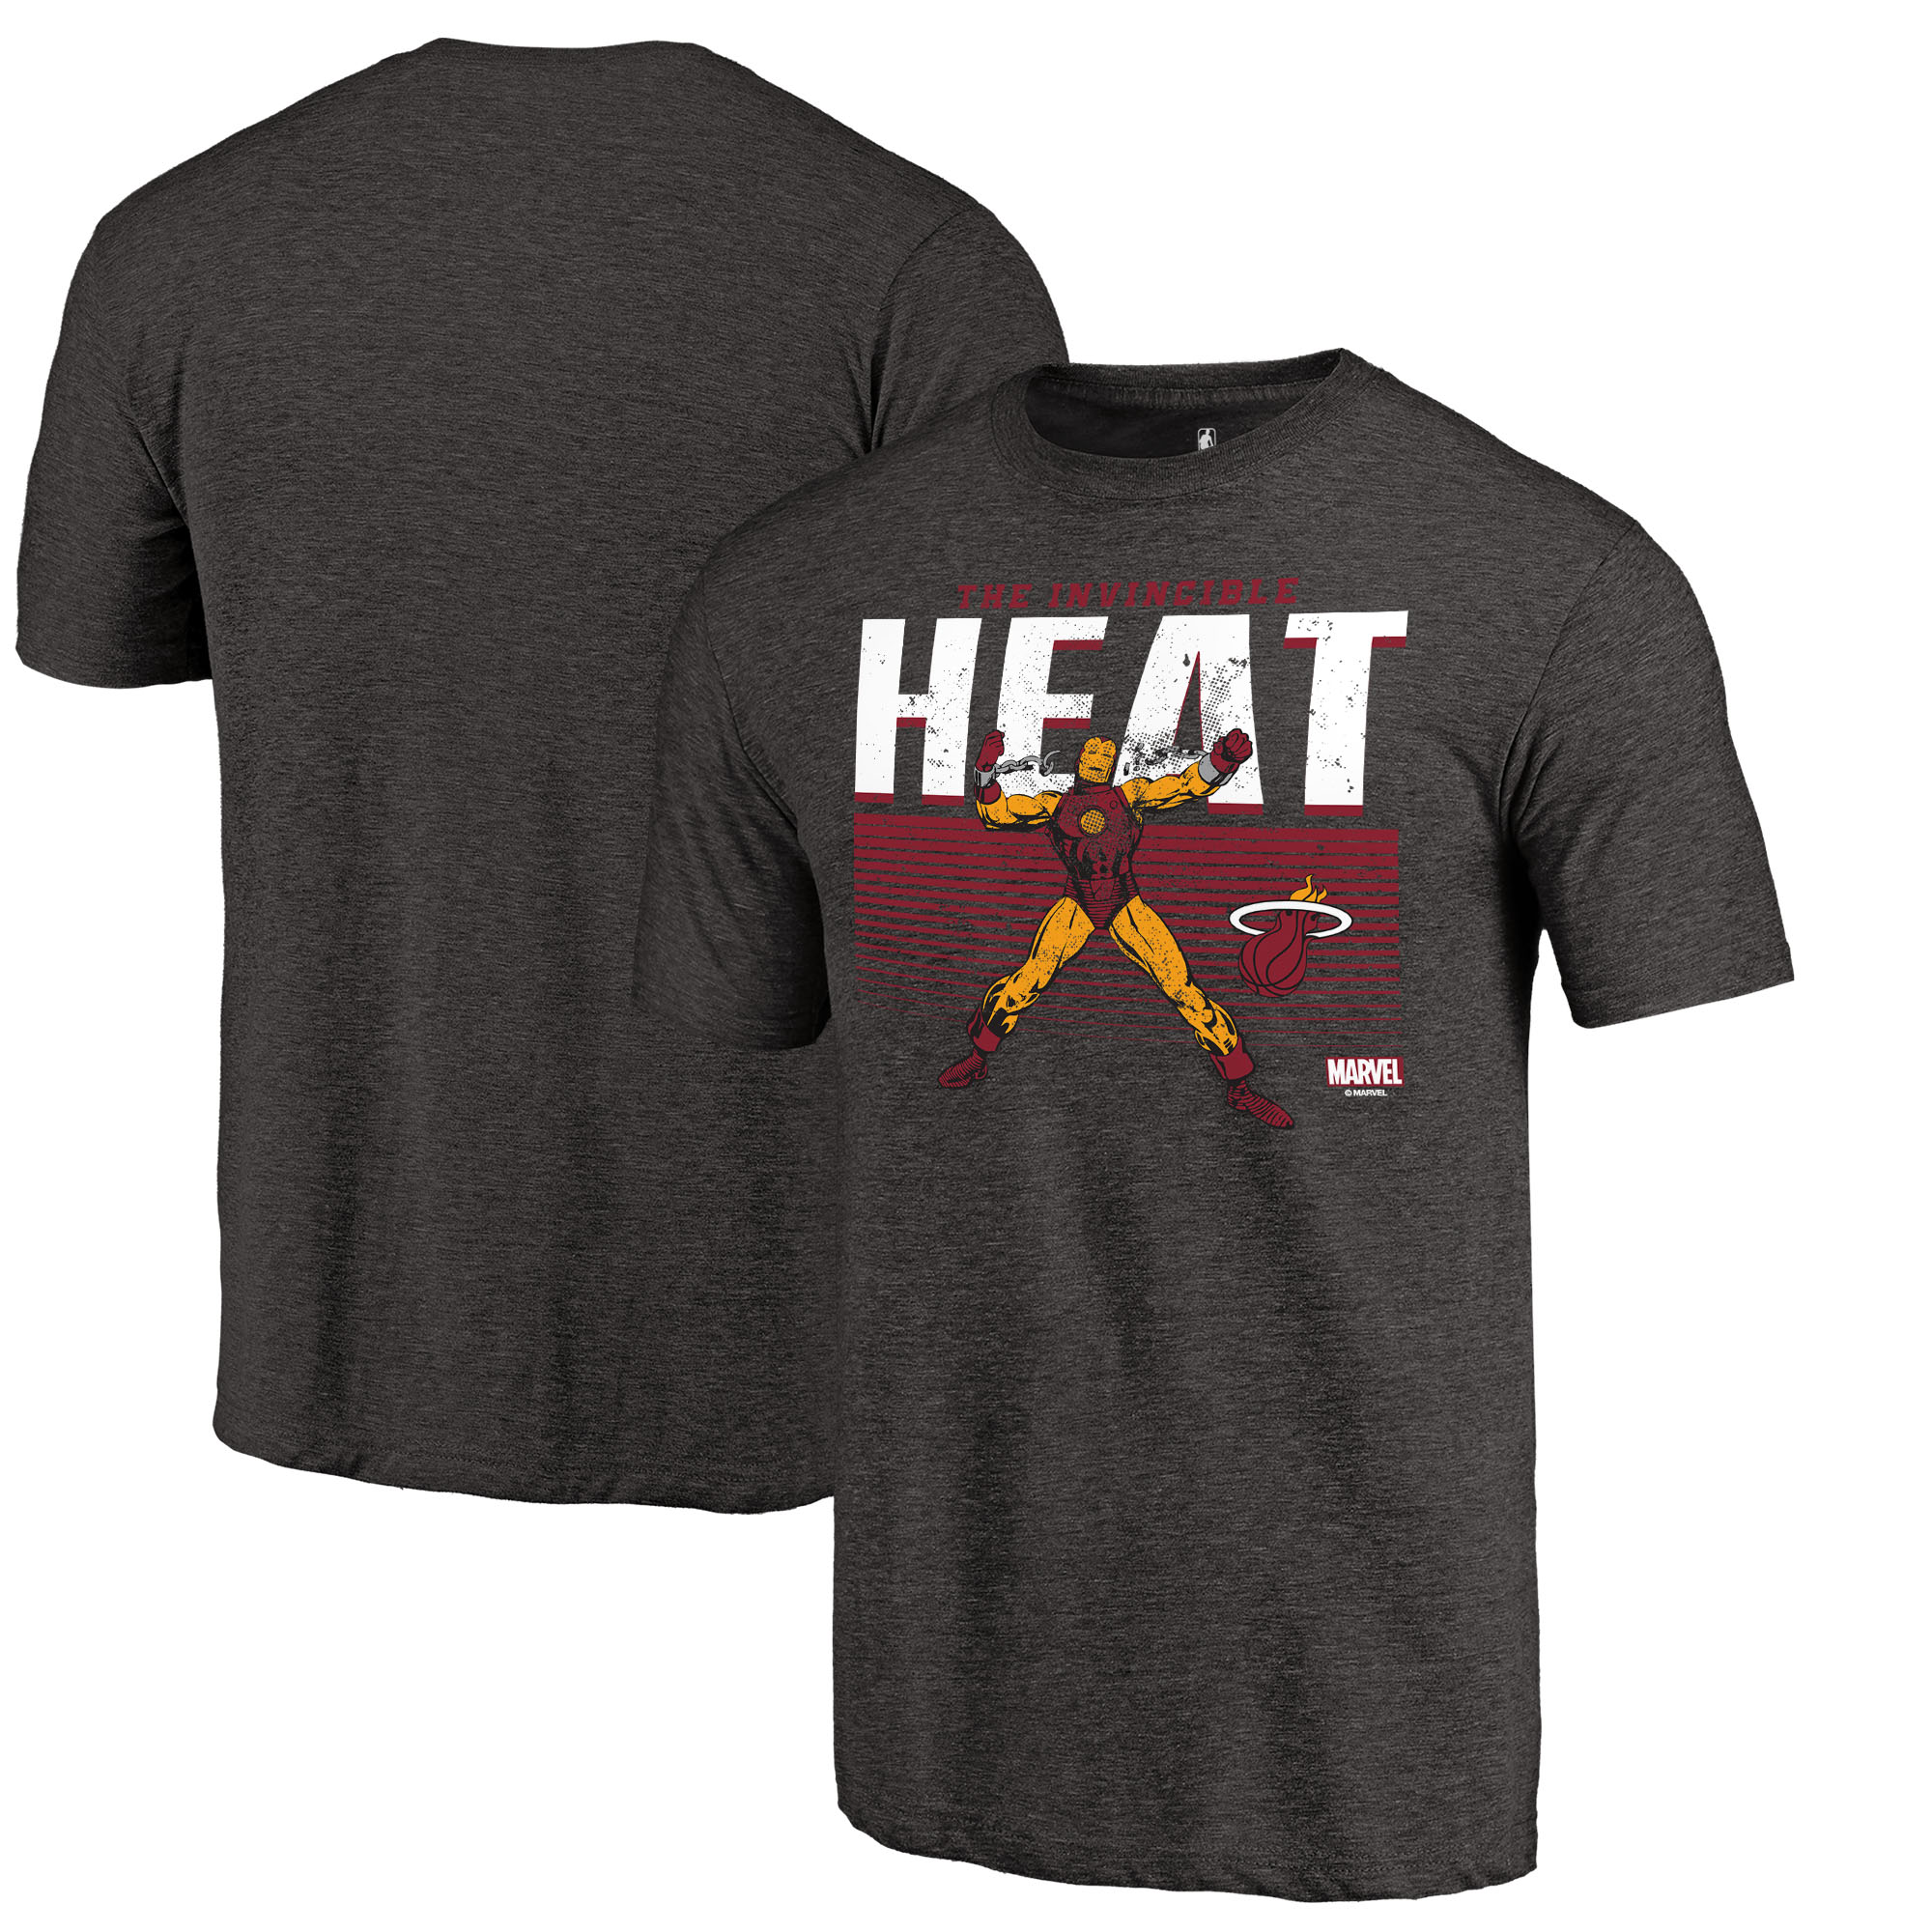 Miami Heat Fanatics Branded Marvel Iron Man Invincible Tri-Blend T-Shirt - Heathered Black